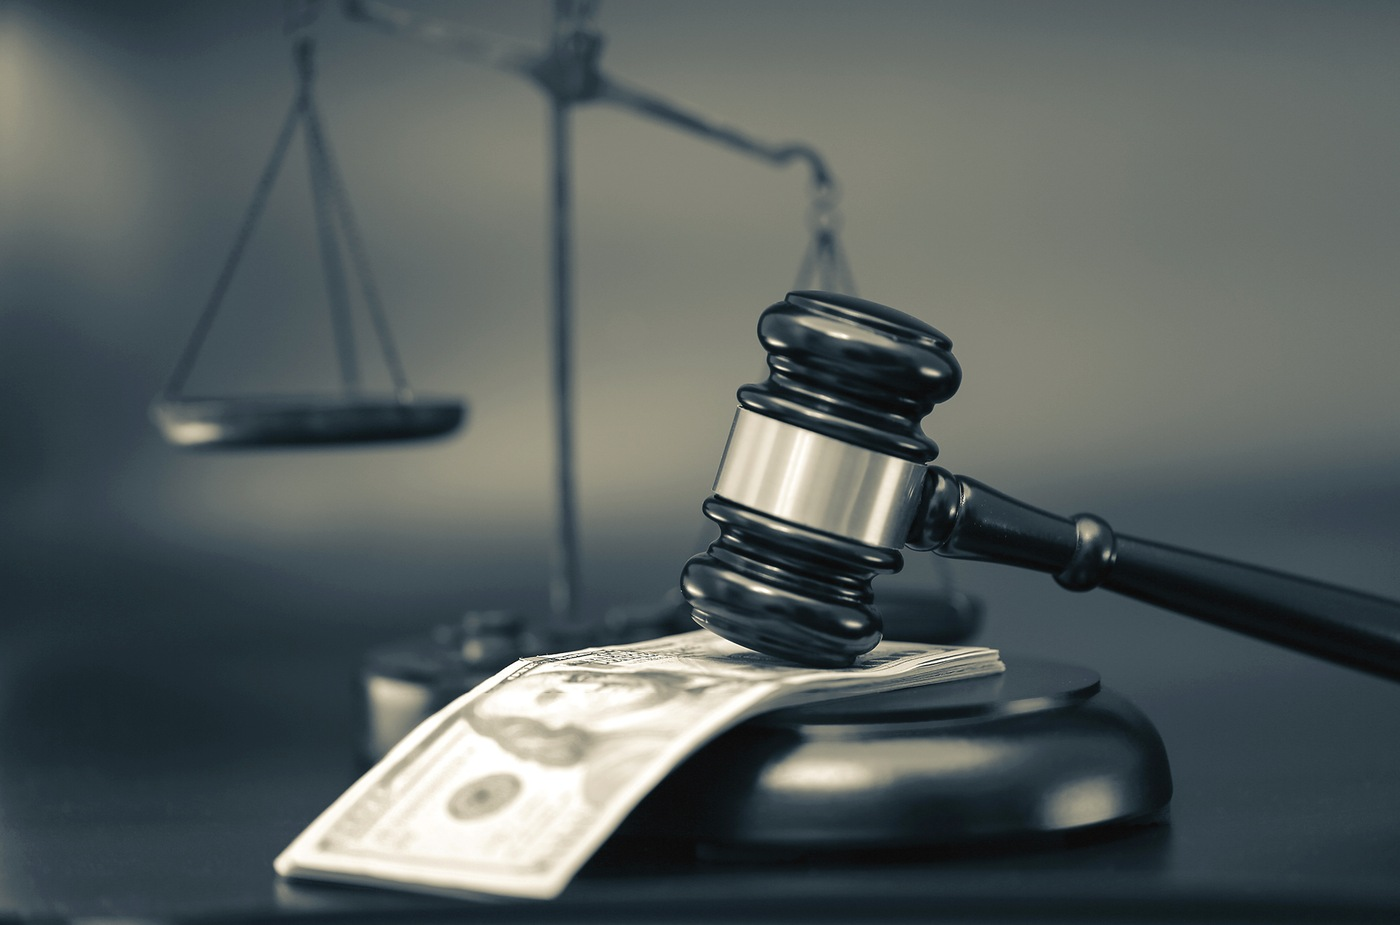 Stock photo depicting money and a gavel, on the scales of justice.